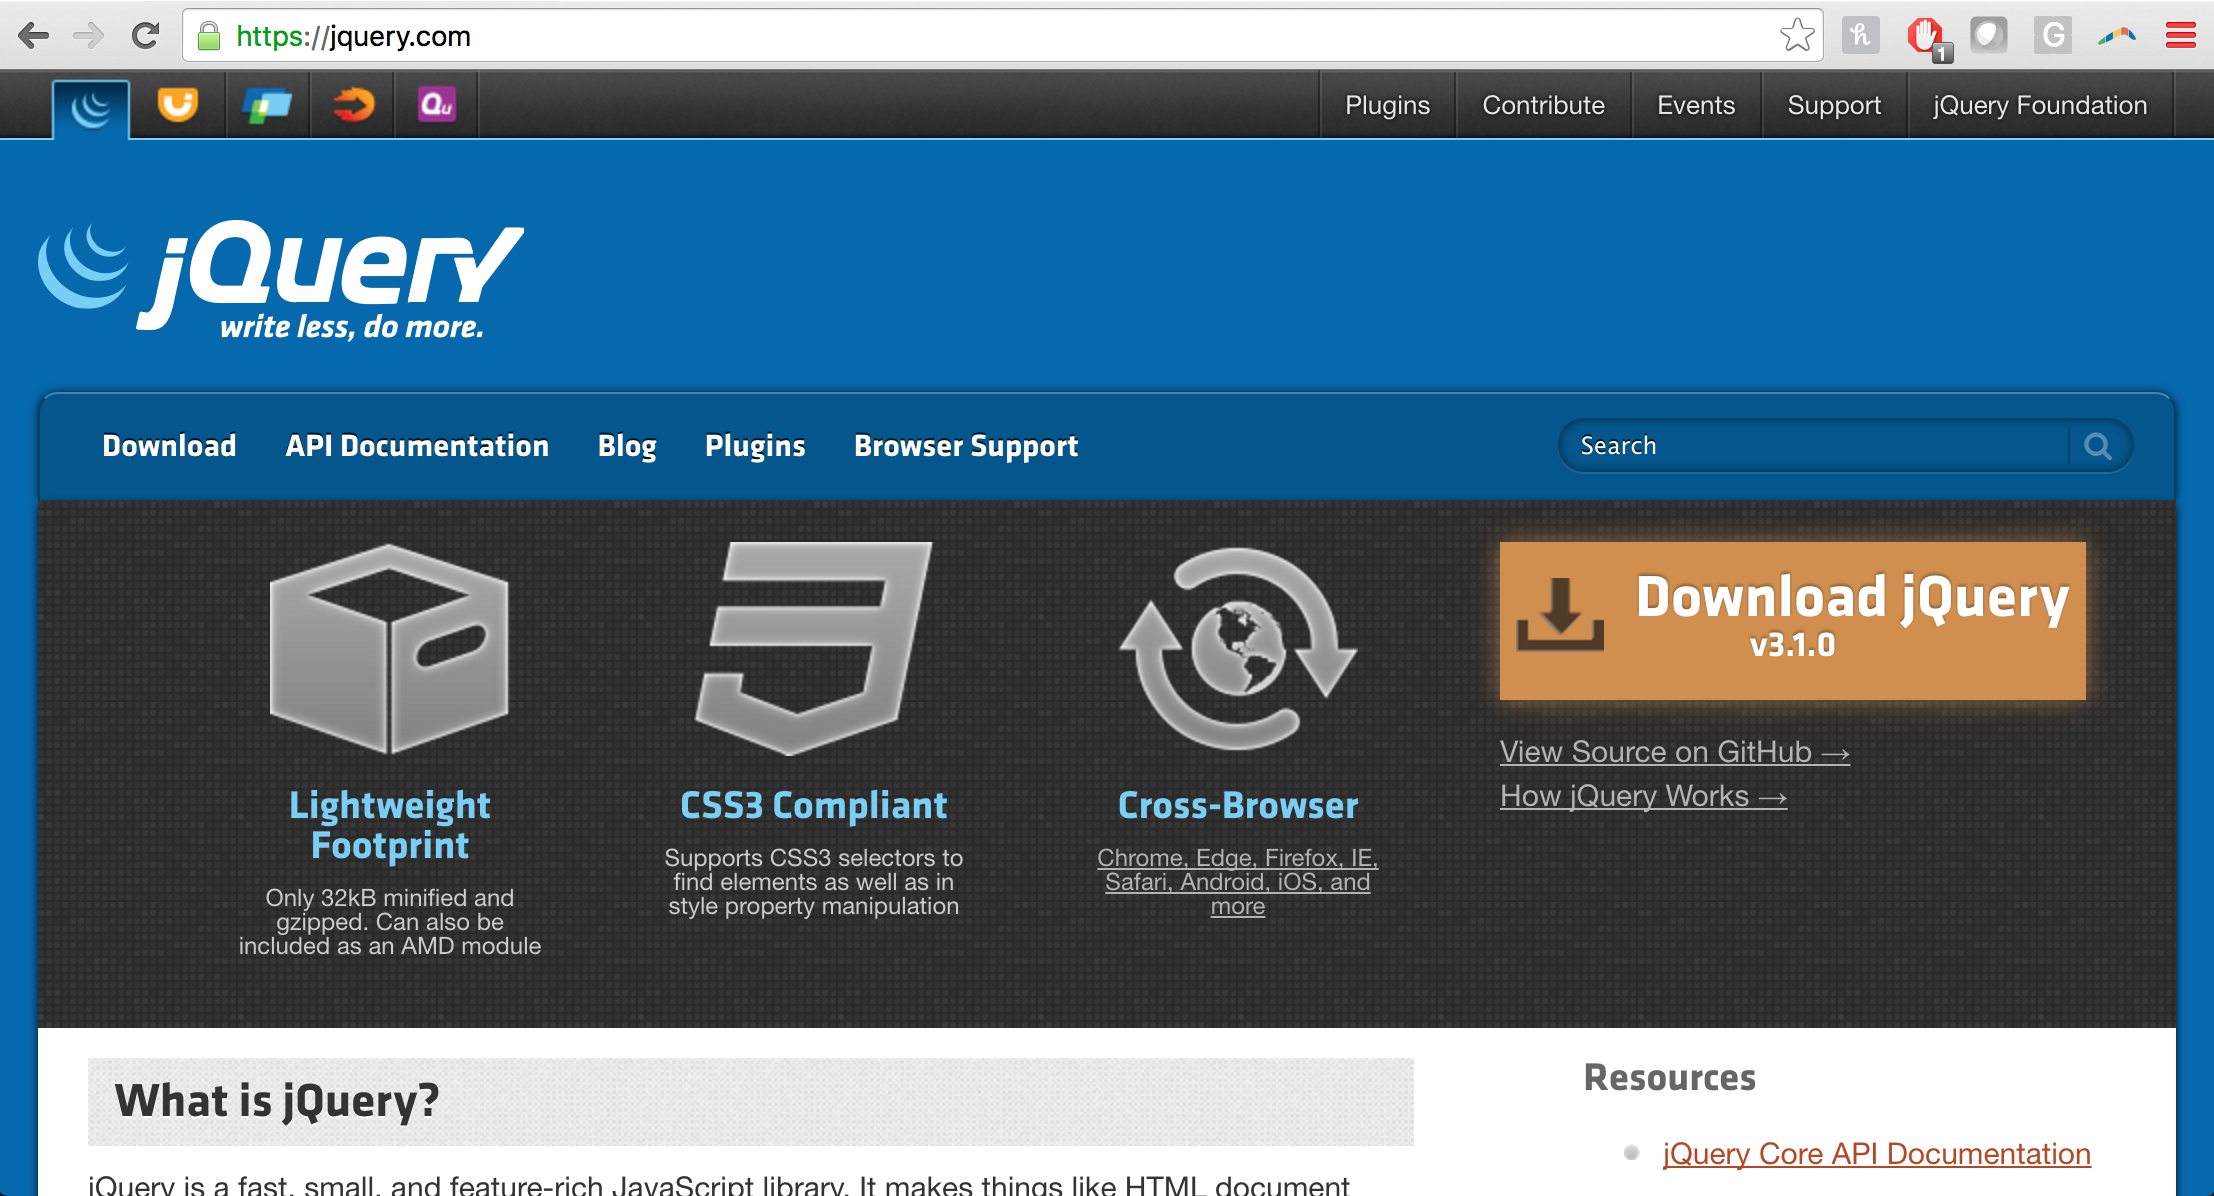 Since Jquery Is A Library It Has An Api That We Can Use To Access Its Functionality